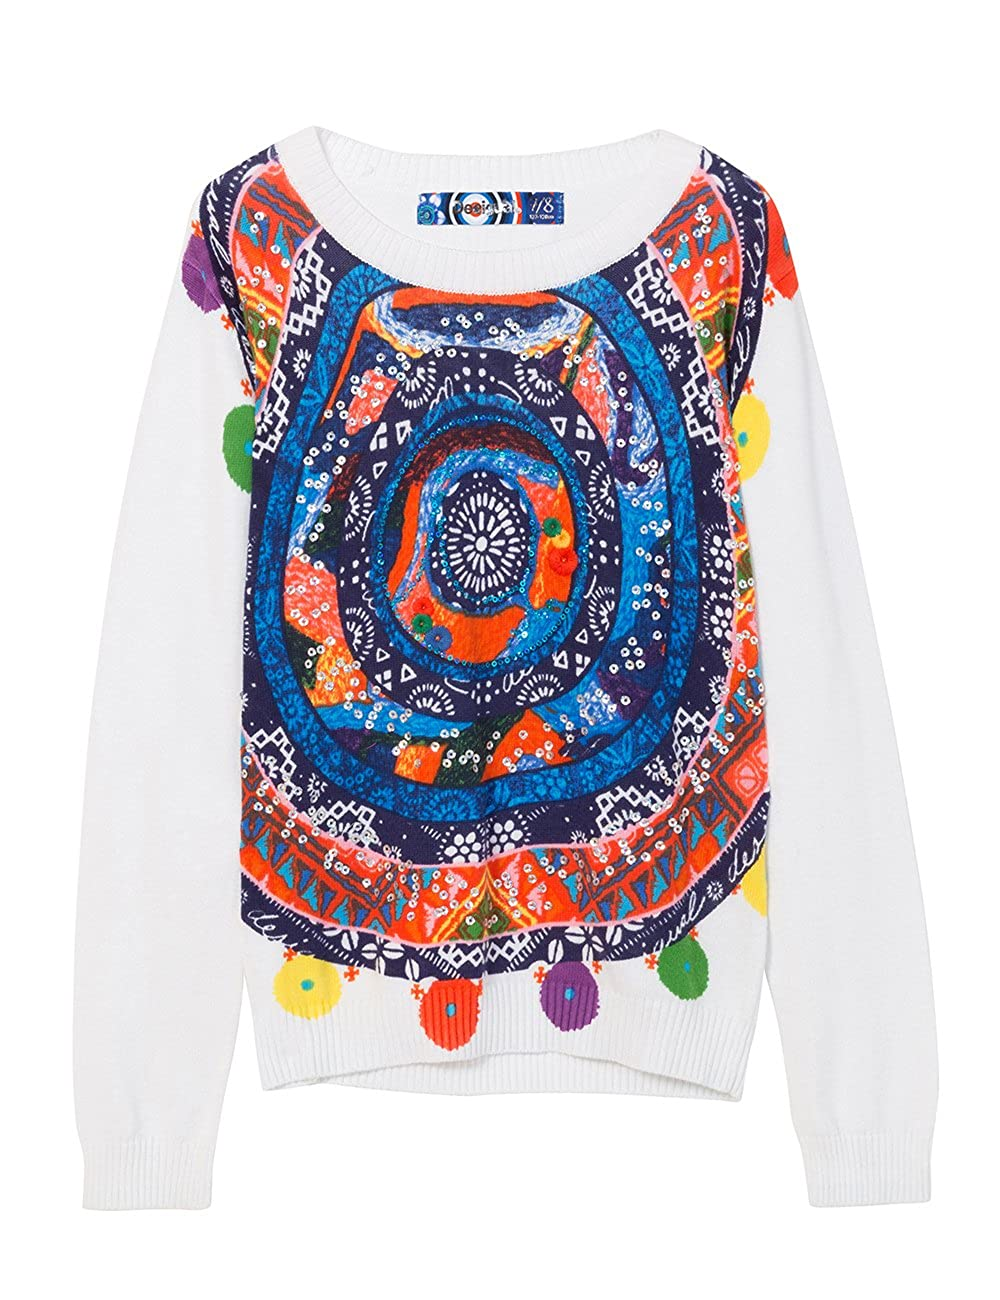 Desigual Girls Sweater Aderson